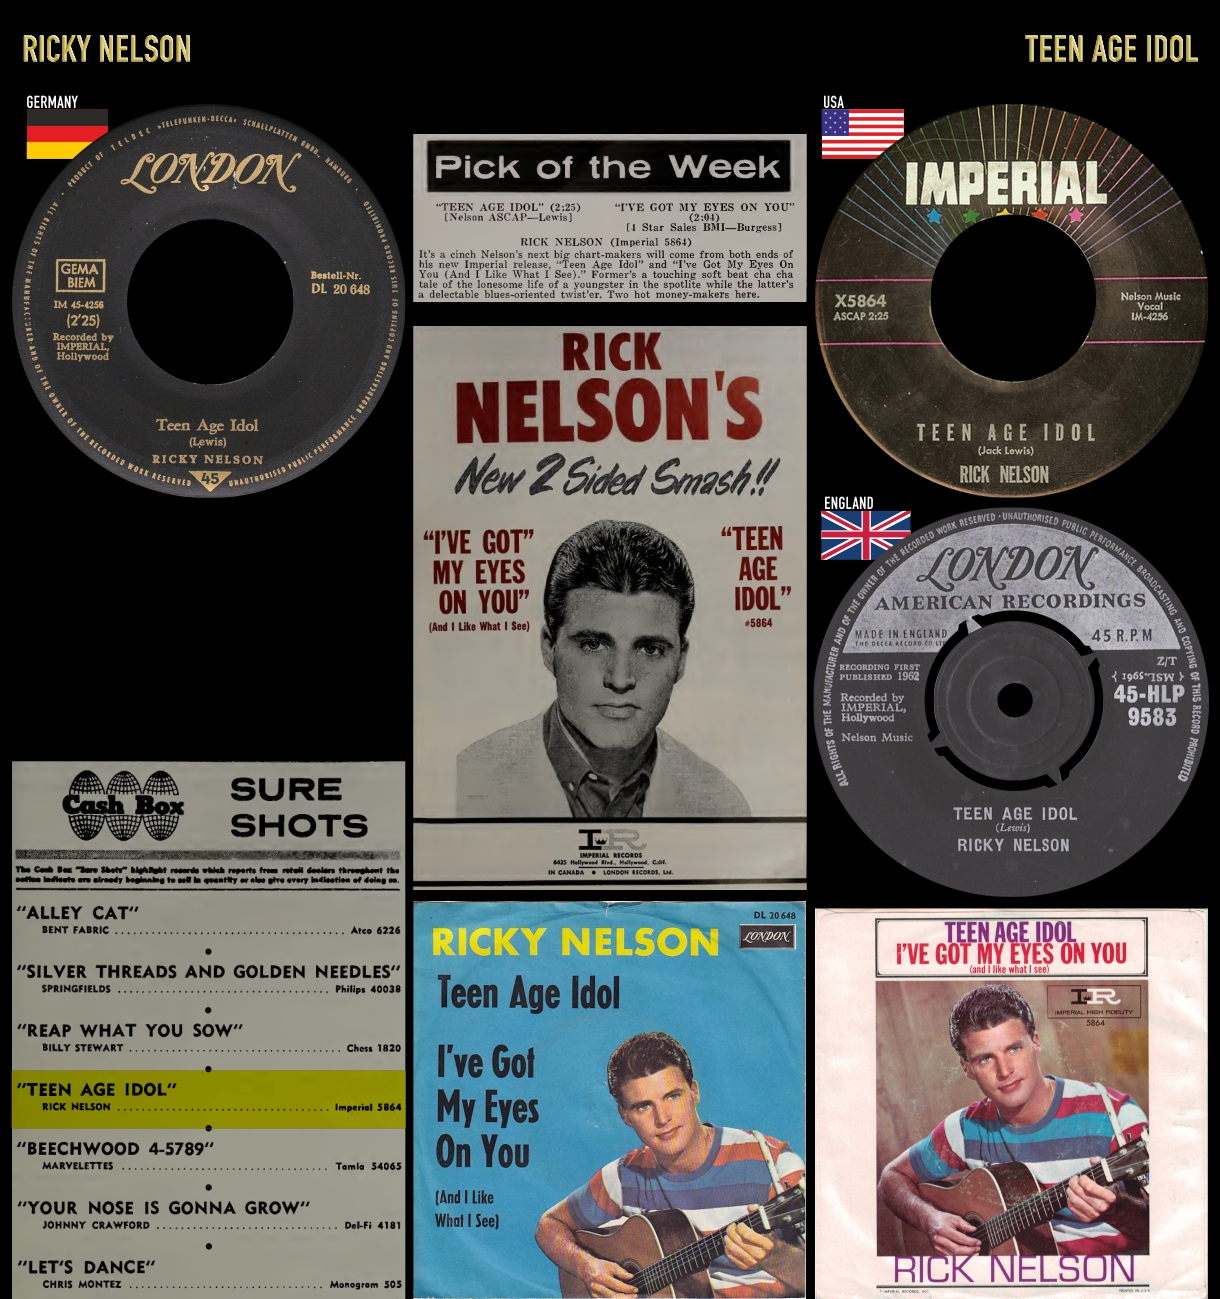 620811_Ricky Nelson_Teen Age Idol